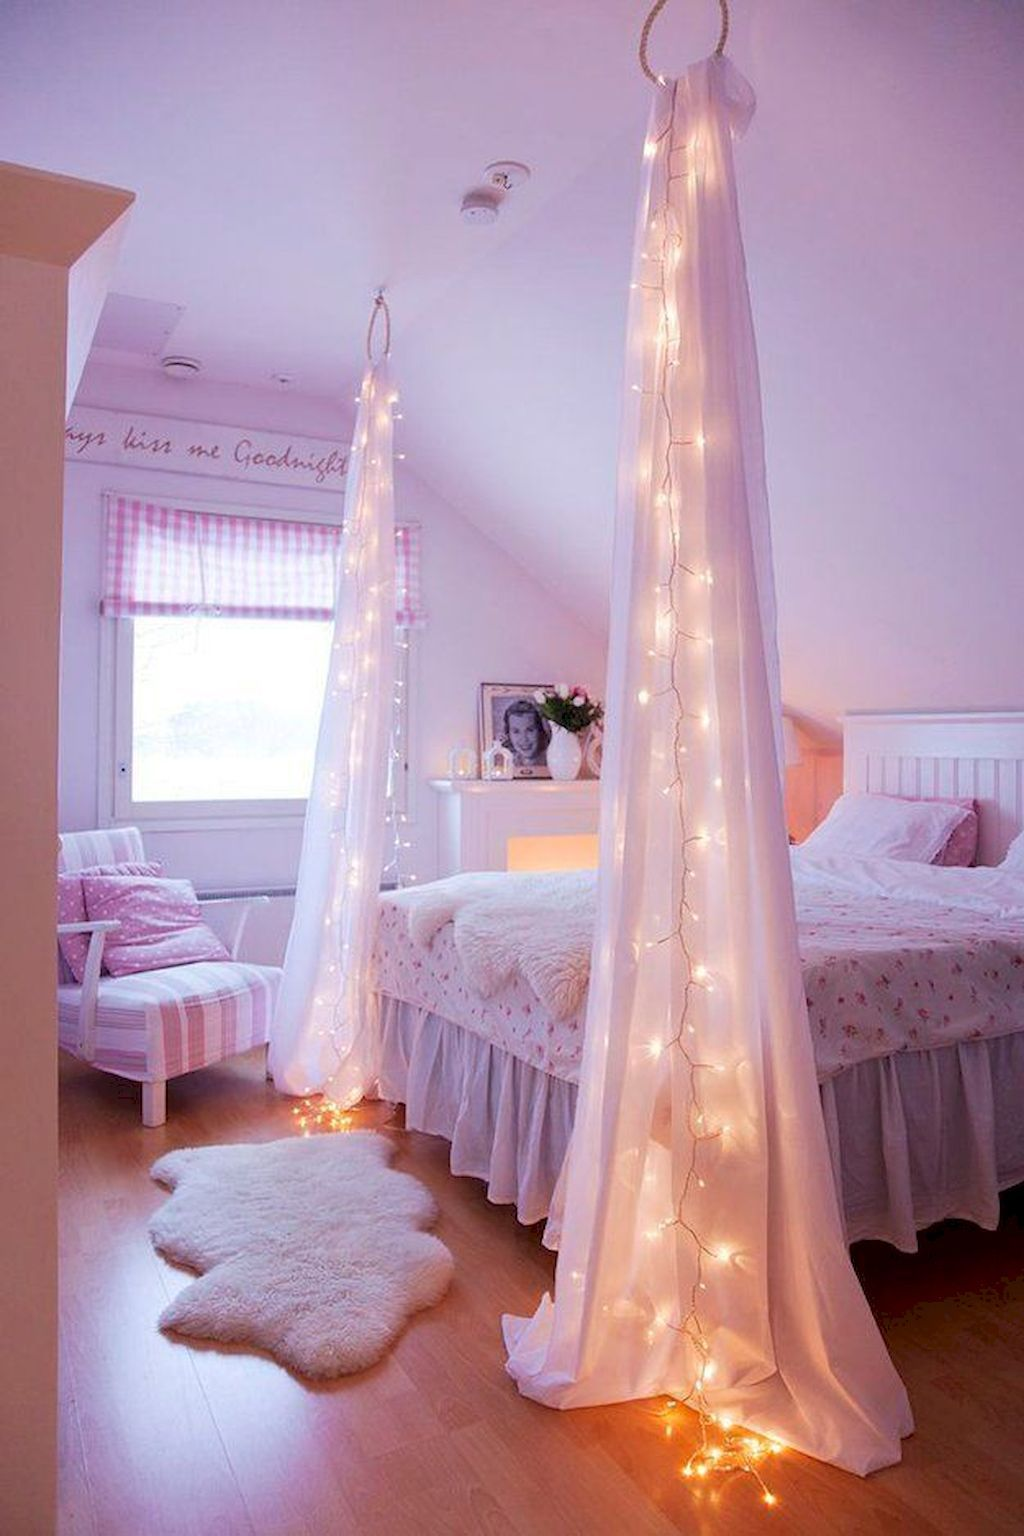 Genial Adorable 27 Pretty Unicorn Bedroom Ideas For Kid Rooms  Https://besideroom.com